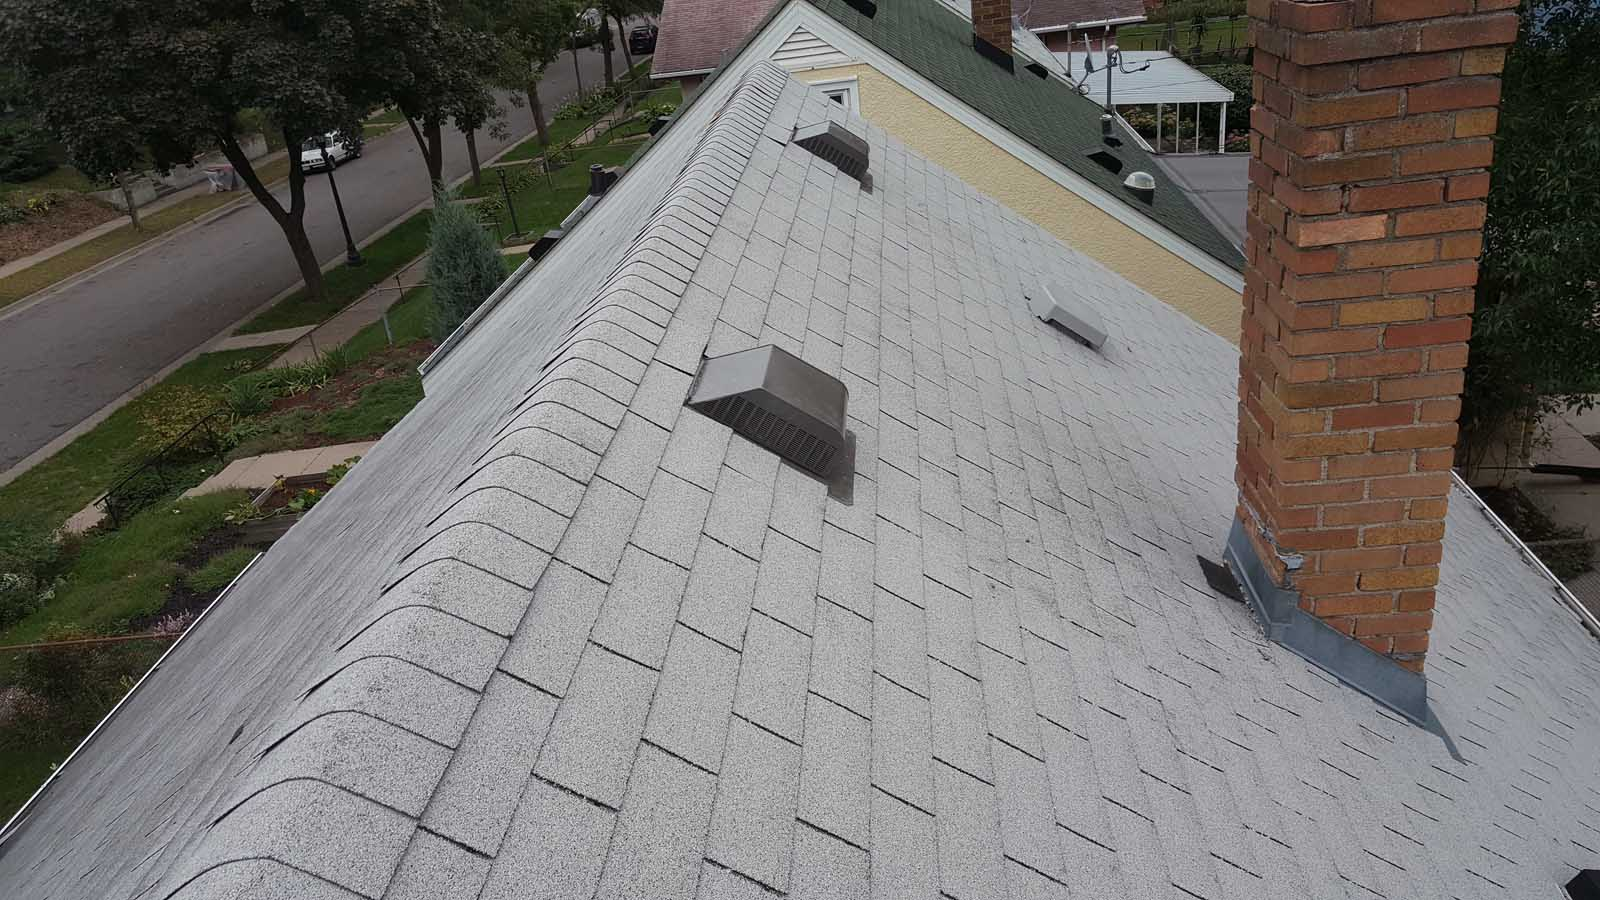 Insulation Services Page, Gallery, Roof vent installation - after, MGT Insulation, Inc.